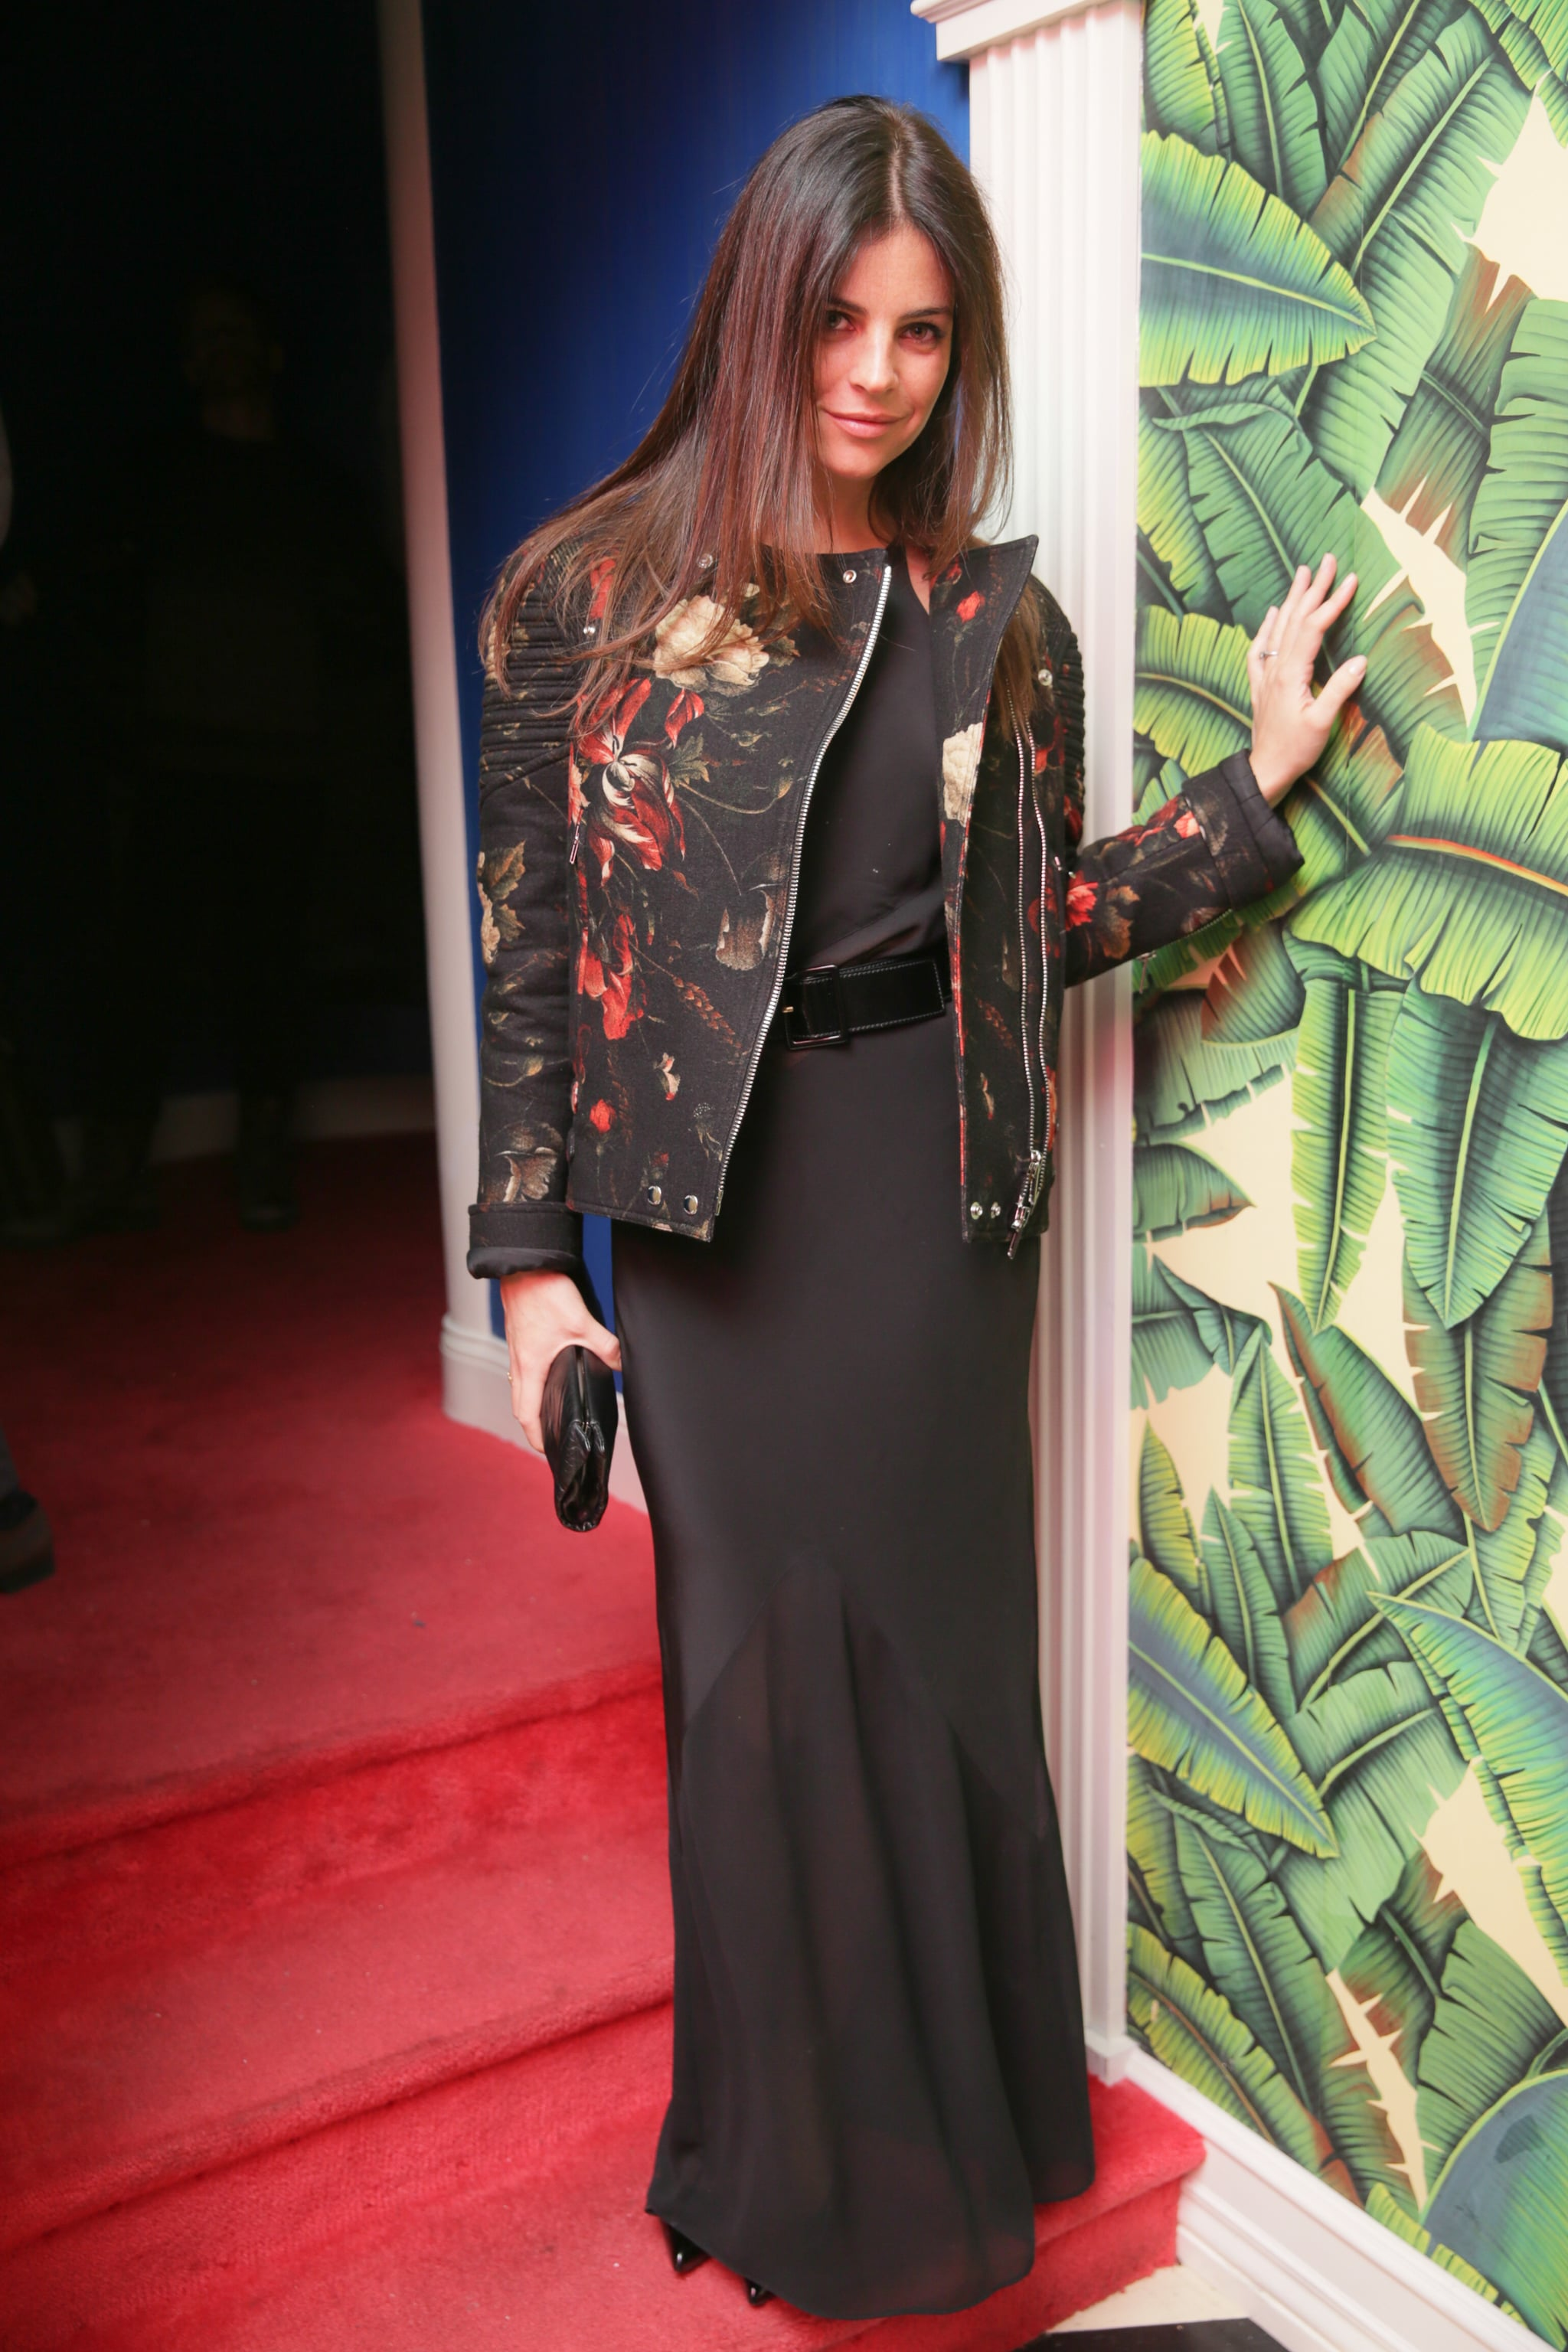 Julia Restoin Roitfeld at Style.com's issue launch event.